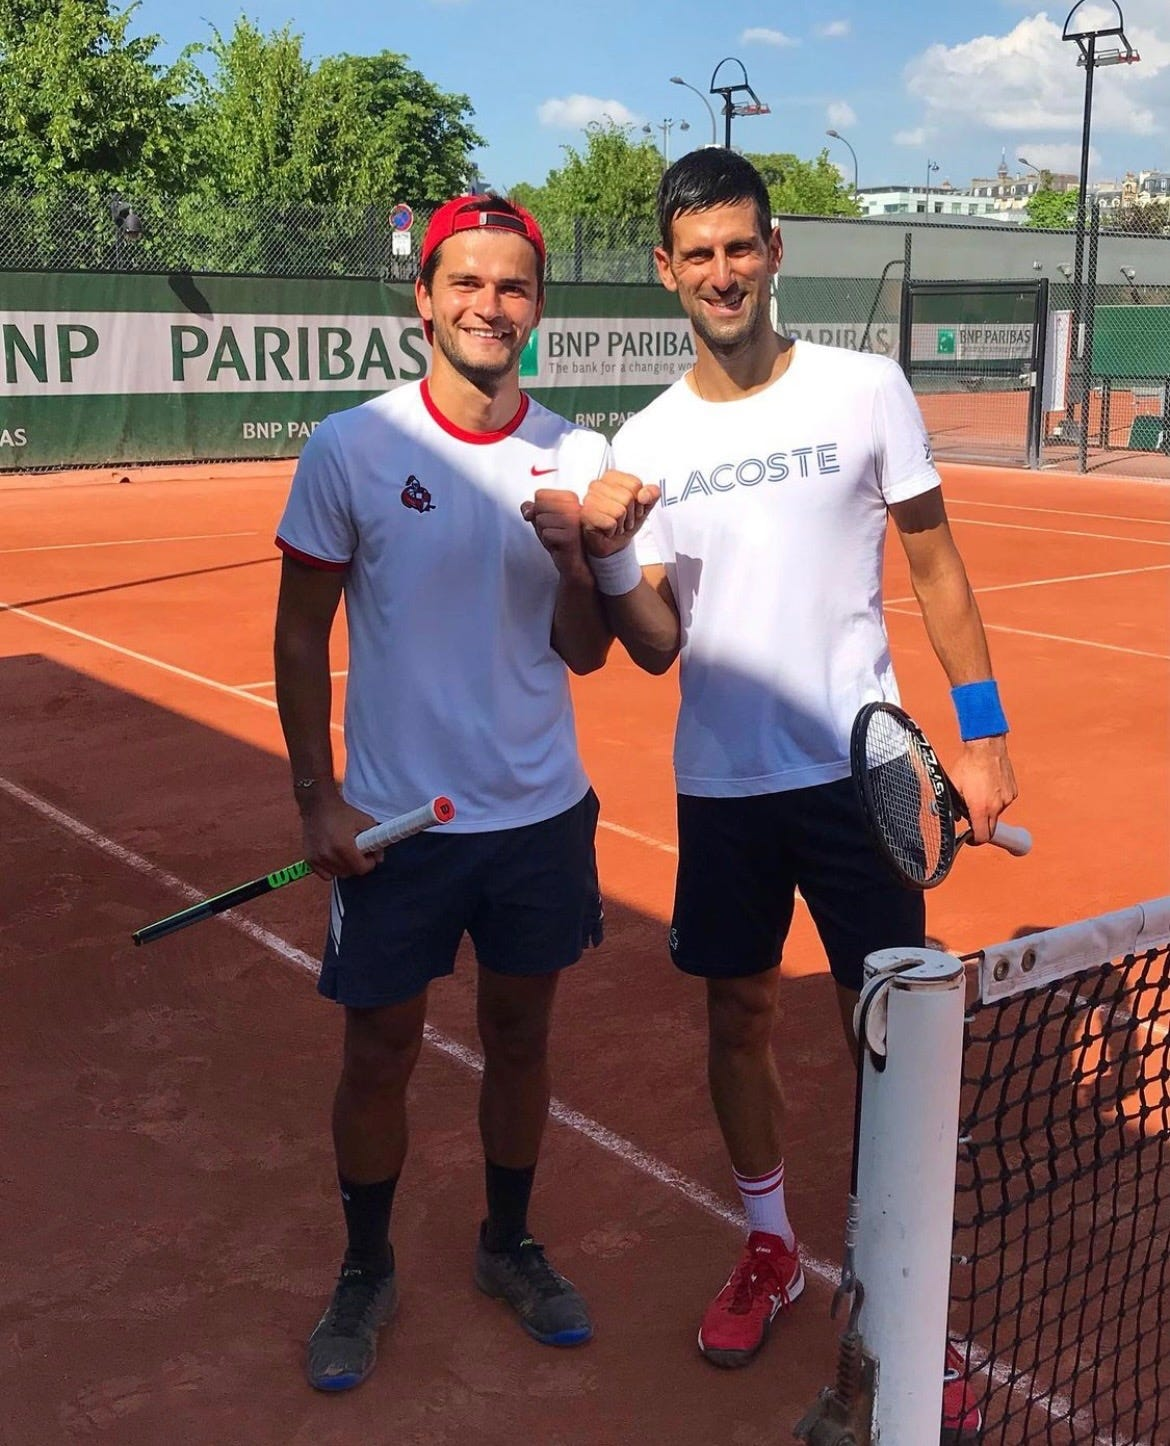 Meet the Mississippi college student who helped Novak Djokovic defeat Rafael Nadal in French Open thriller